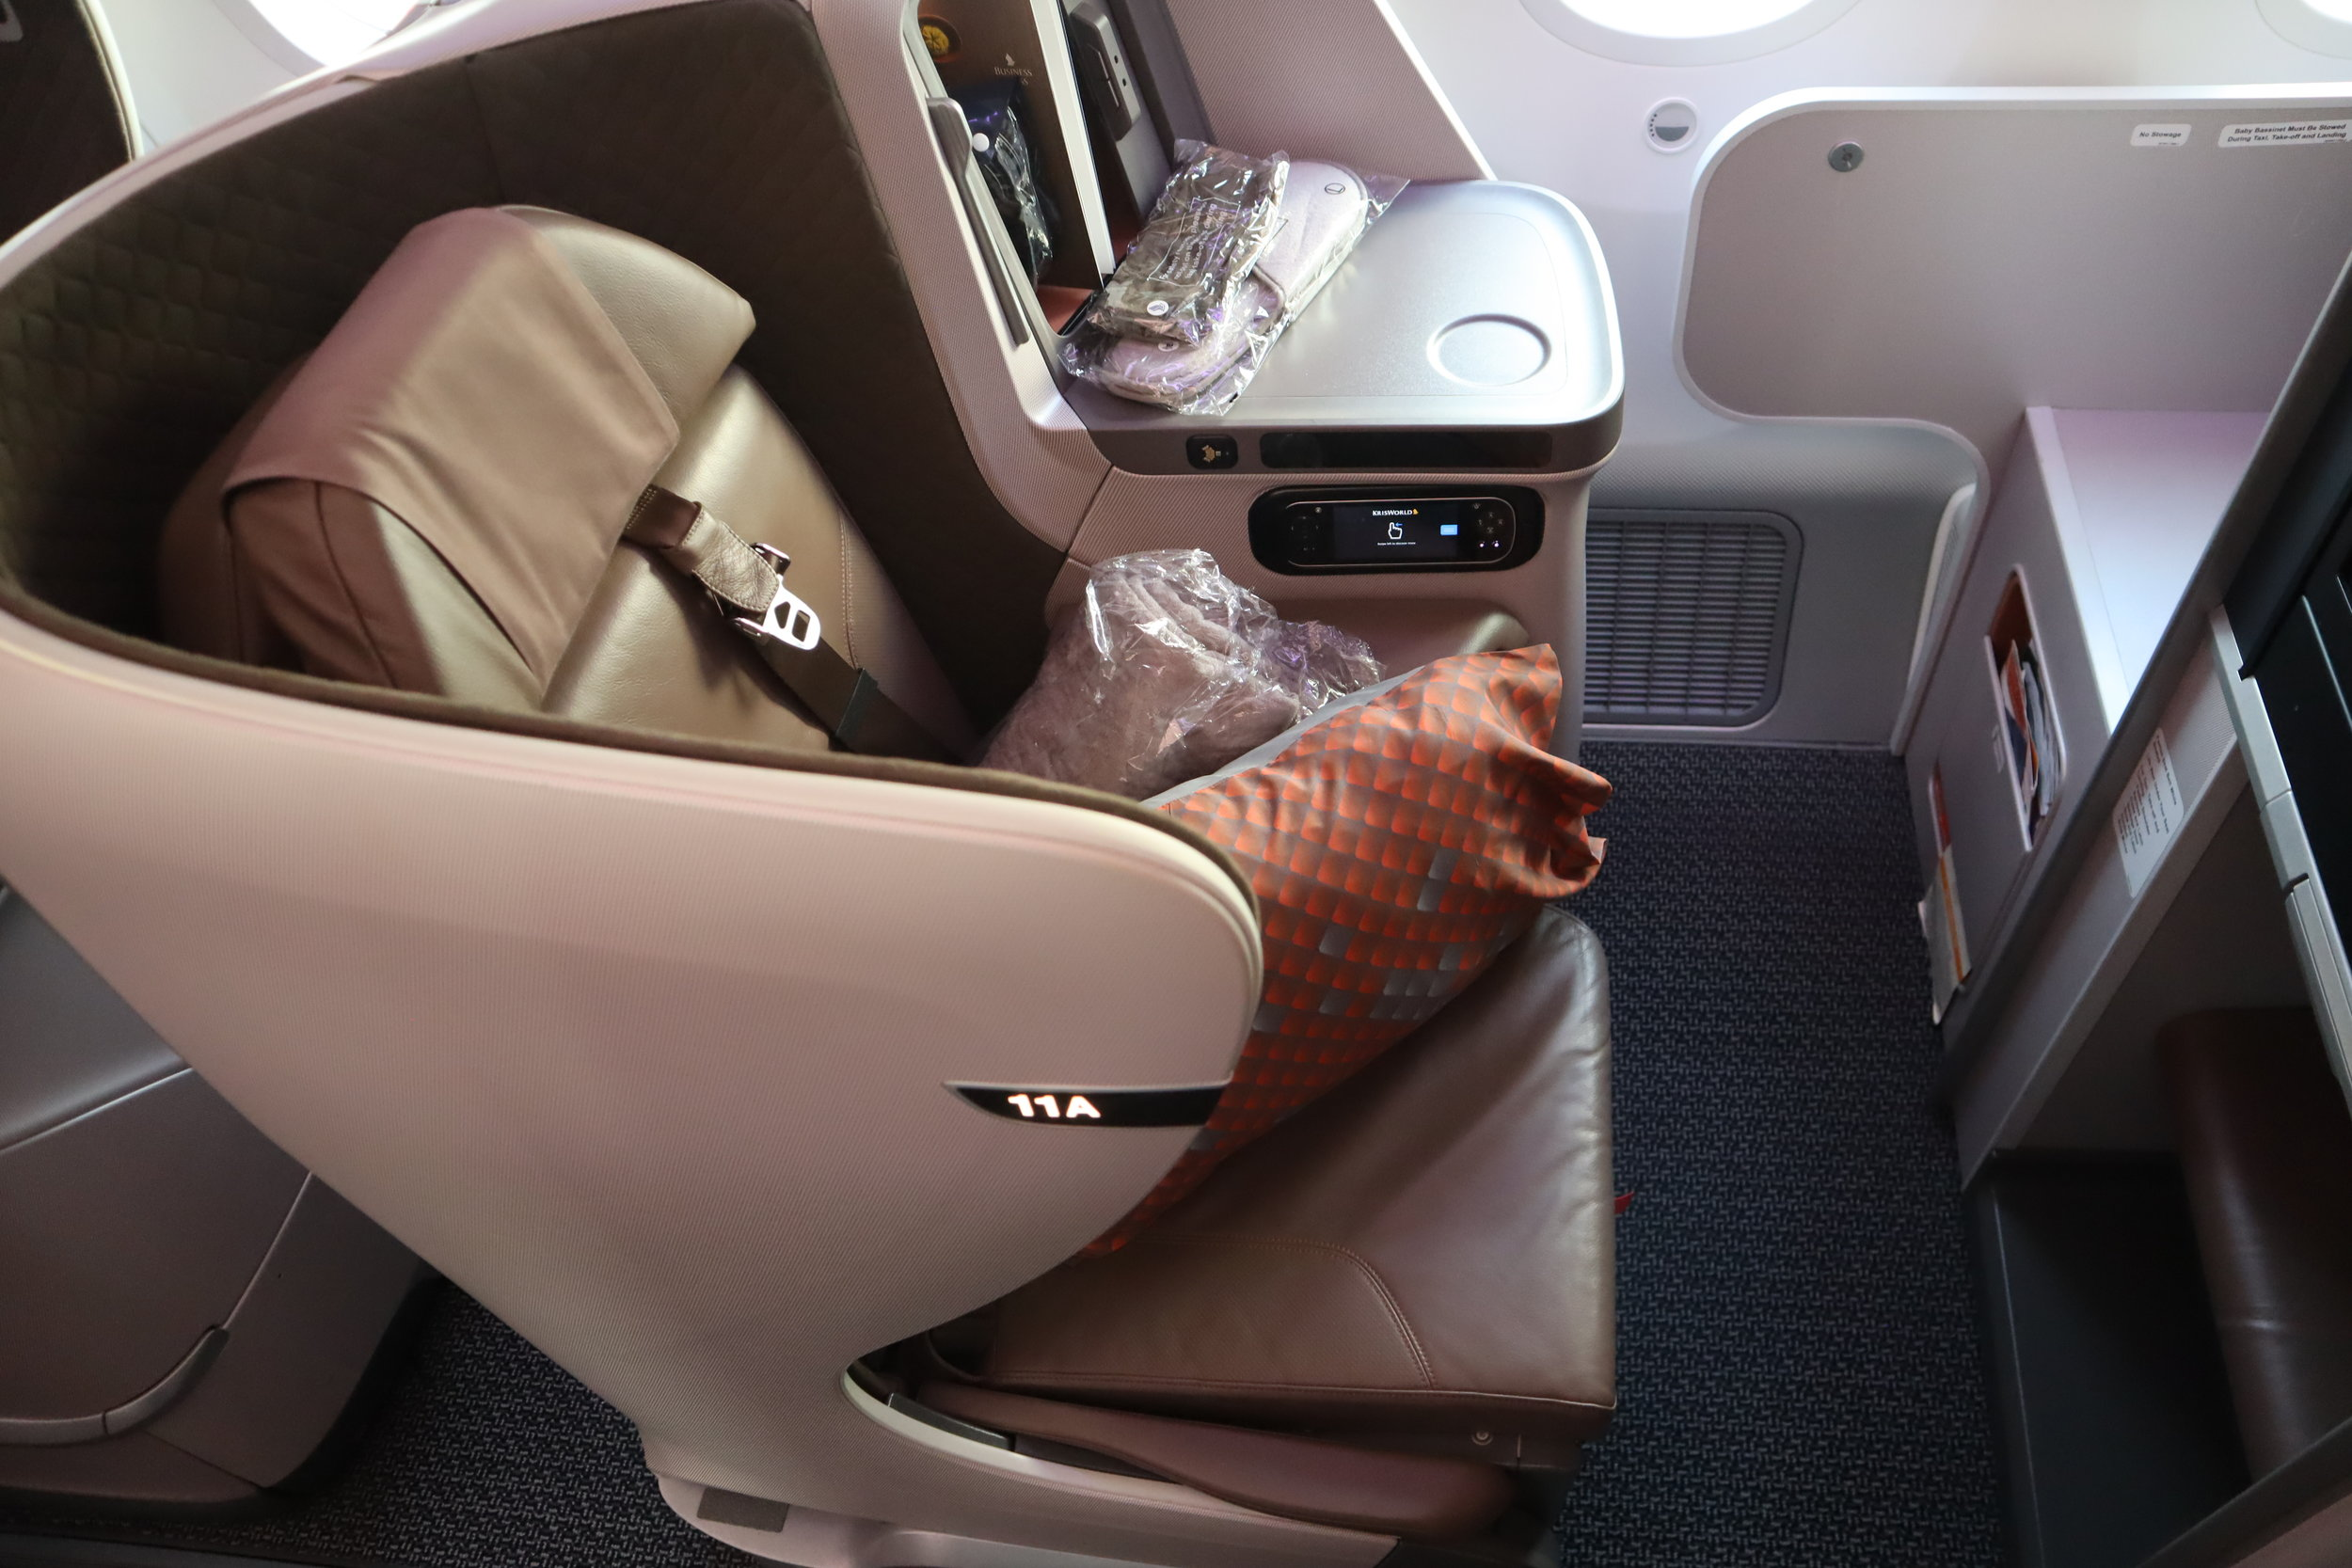 Singapore Airlines 787-10 business class – Seat 11A